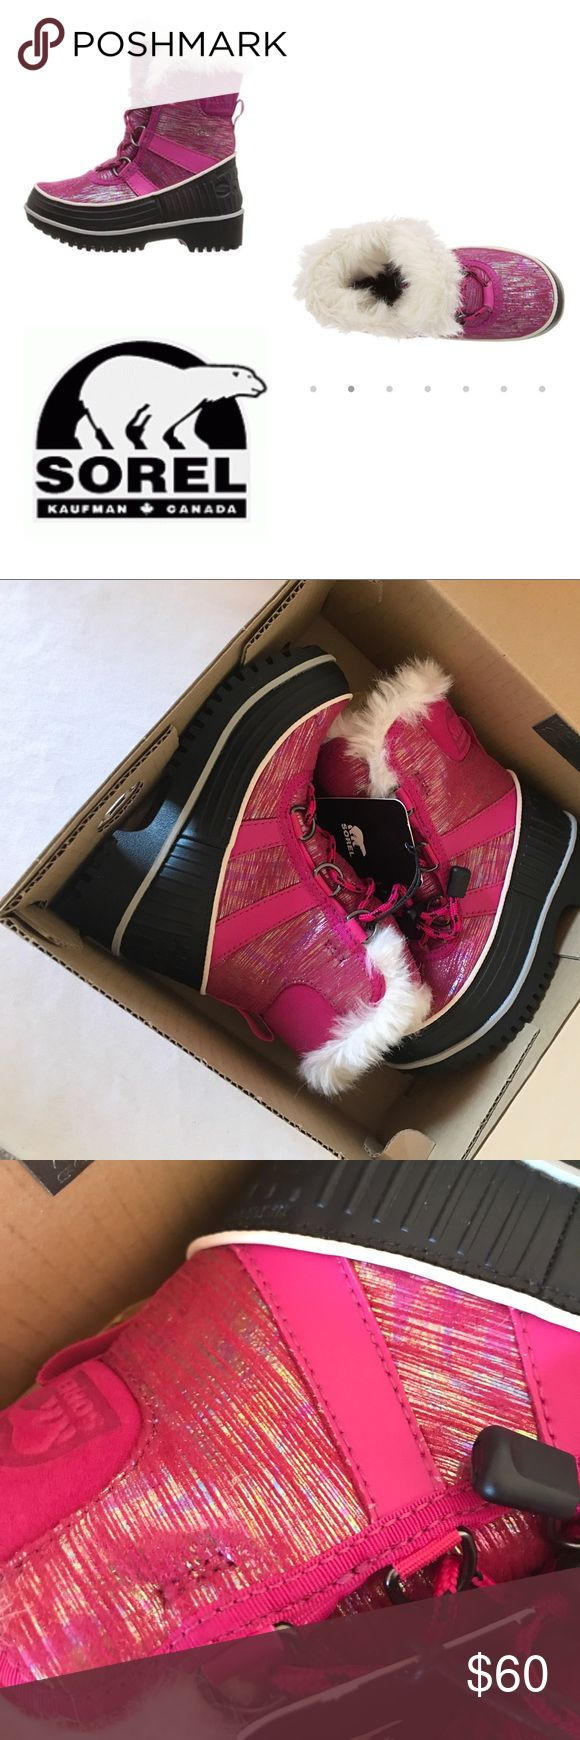 Sorel kids, tivoli 2, metallic haute pink, nib, 10 Grab these early to keep ur lil' ones tootsies warm. 🚫no trades. Size 10, nib, haute pink glitter. With bungee laces, a shiny metallic waterproof upper, and 100 grams of insulation with a soft fleece lining, the Child Tivoli II Metallic Boot is up for any cold weather adventure. Waterproof textile upper with PU-coated overlays Breathable membrane construction 100g insulation Removable molded EVA footbed with microfleece topcover Rubber…